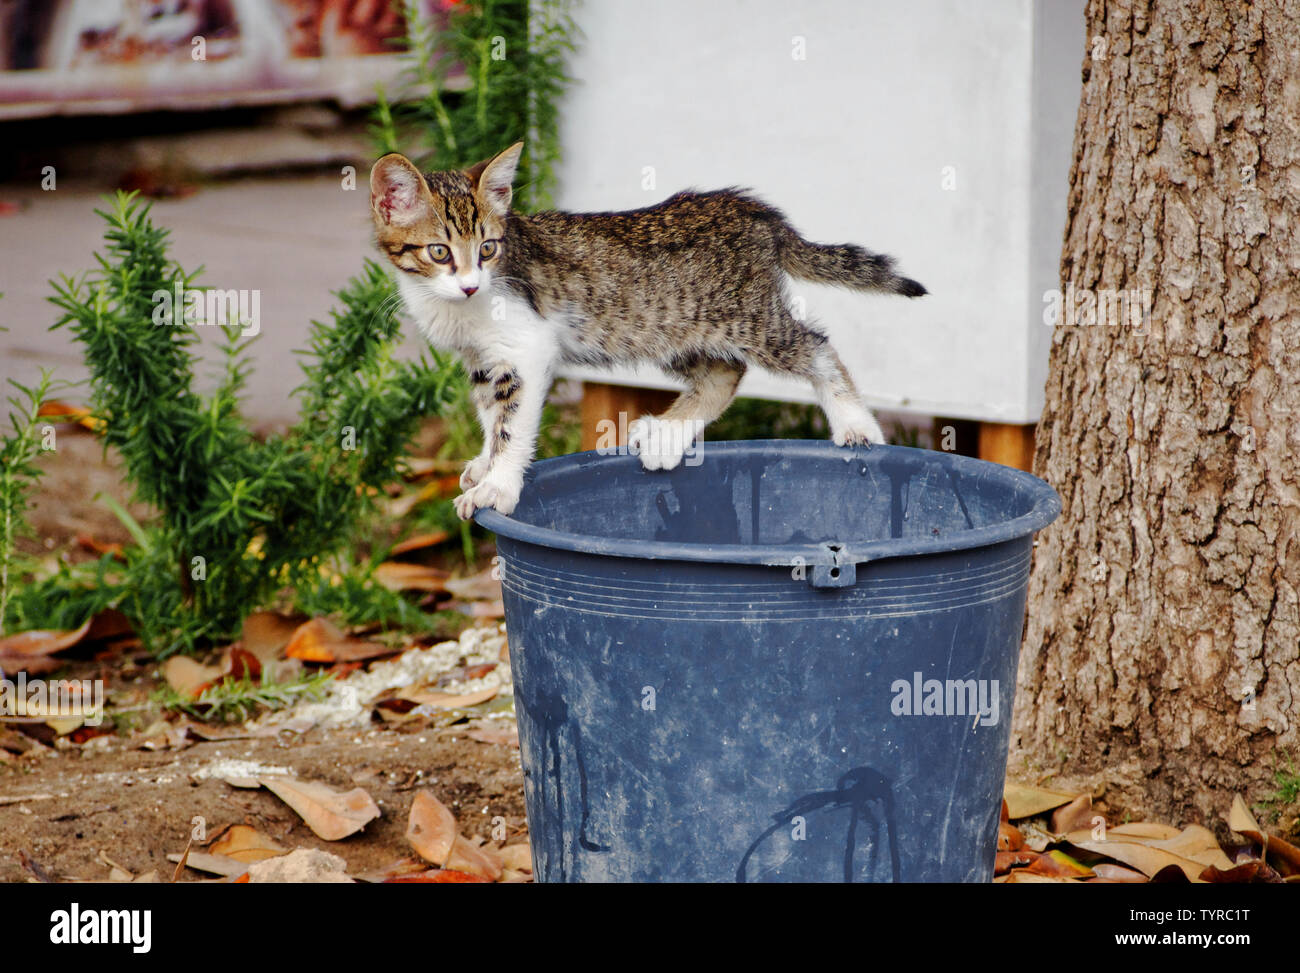 https://c8.alamy.com/comp/TYRC1T/stray-kitten-in-equilibrium-on-a-bucket-TYRC1T.jpg